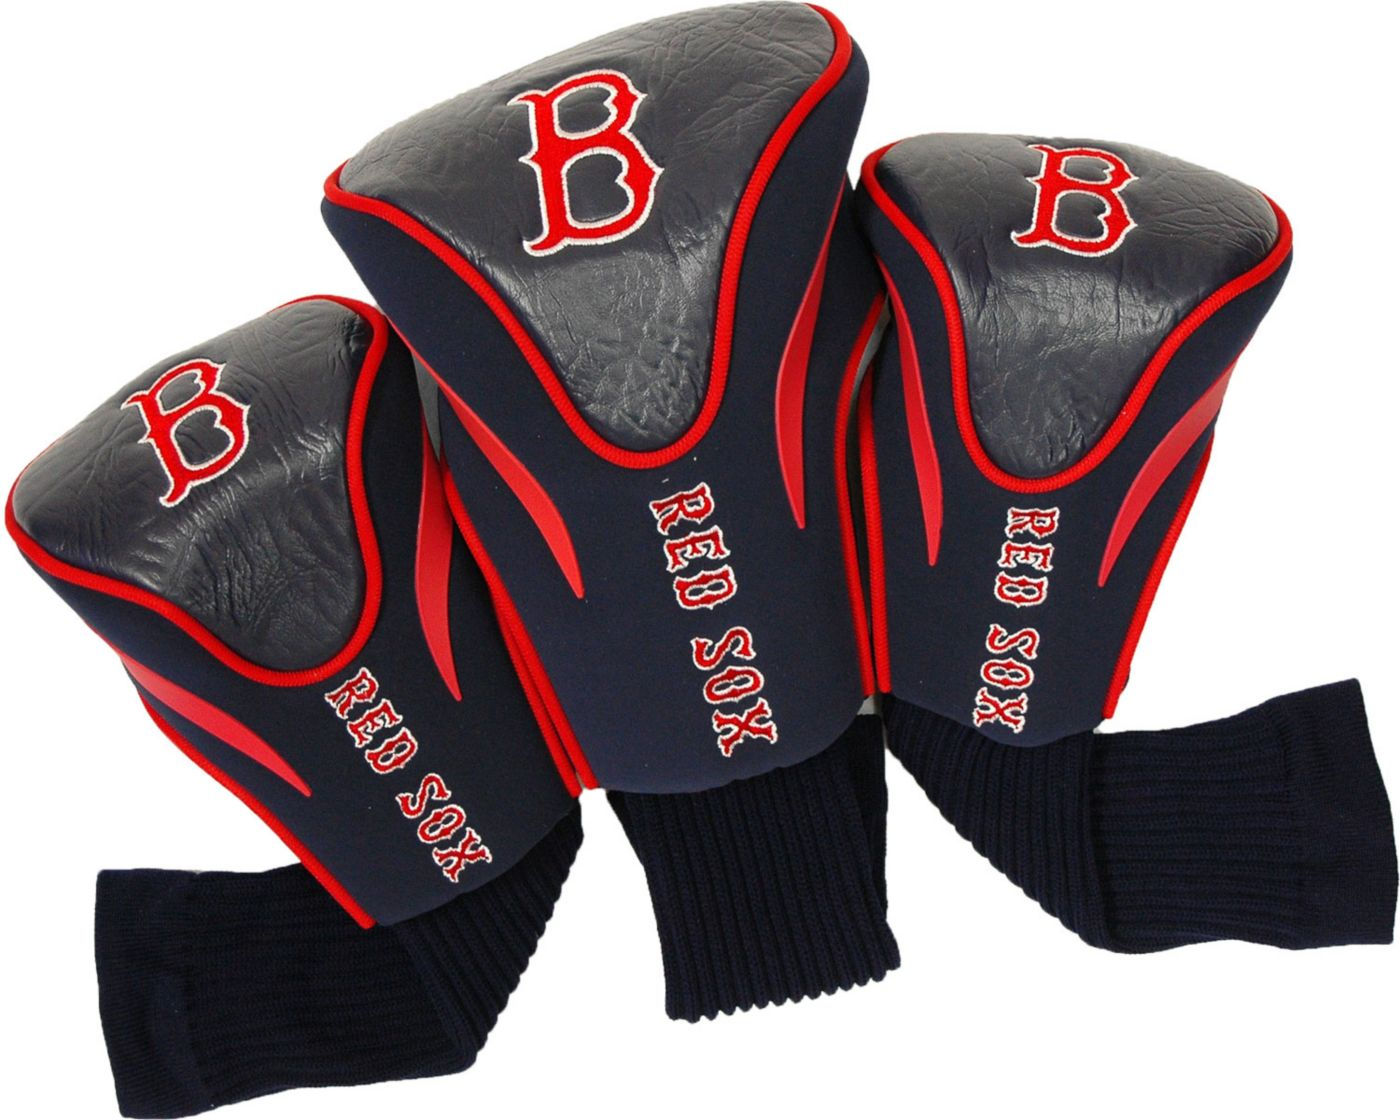 Team Golf Boston Red Sox Contour Sock Headcovers - 3 Pack